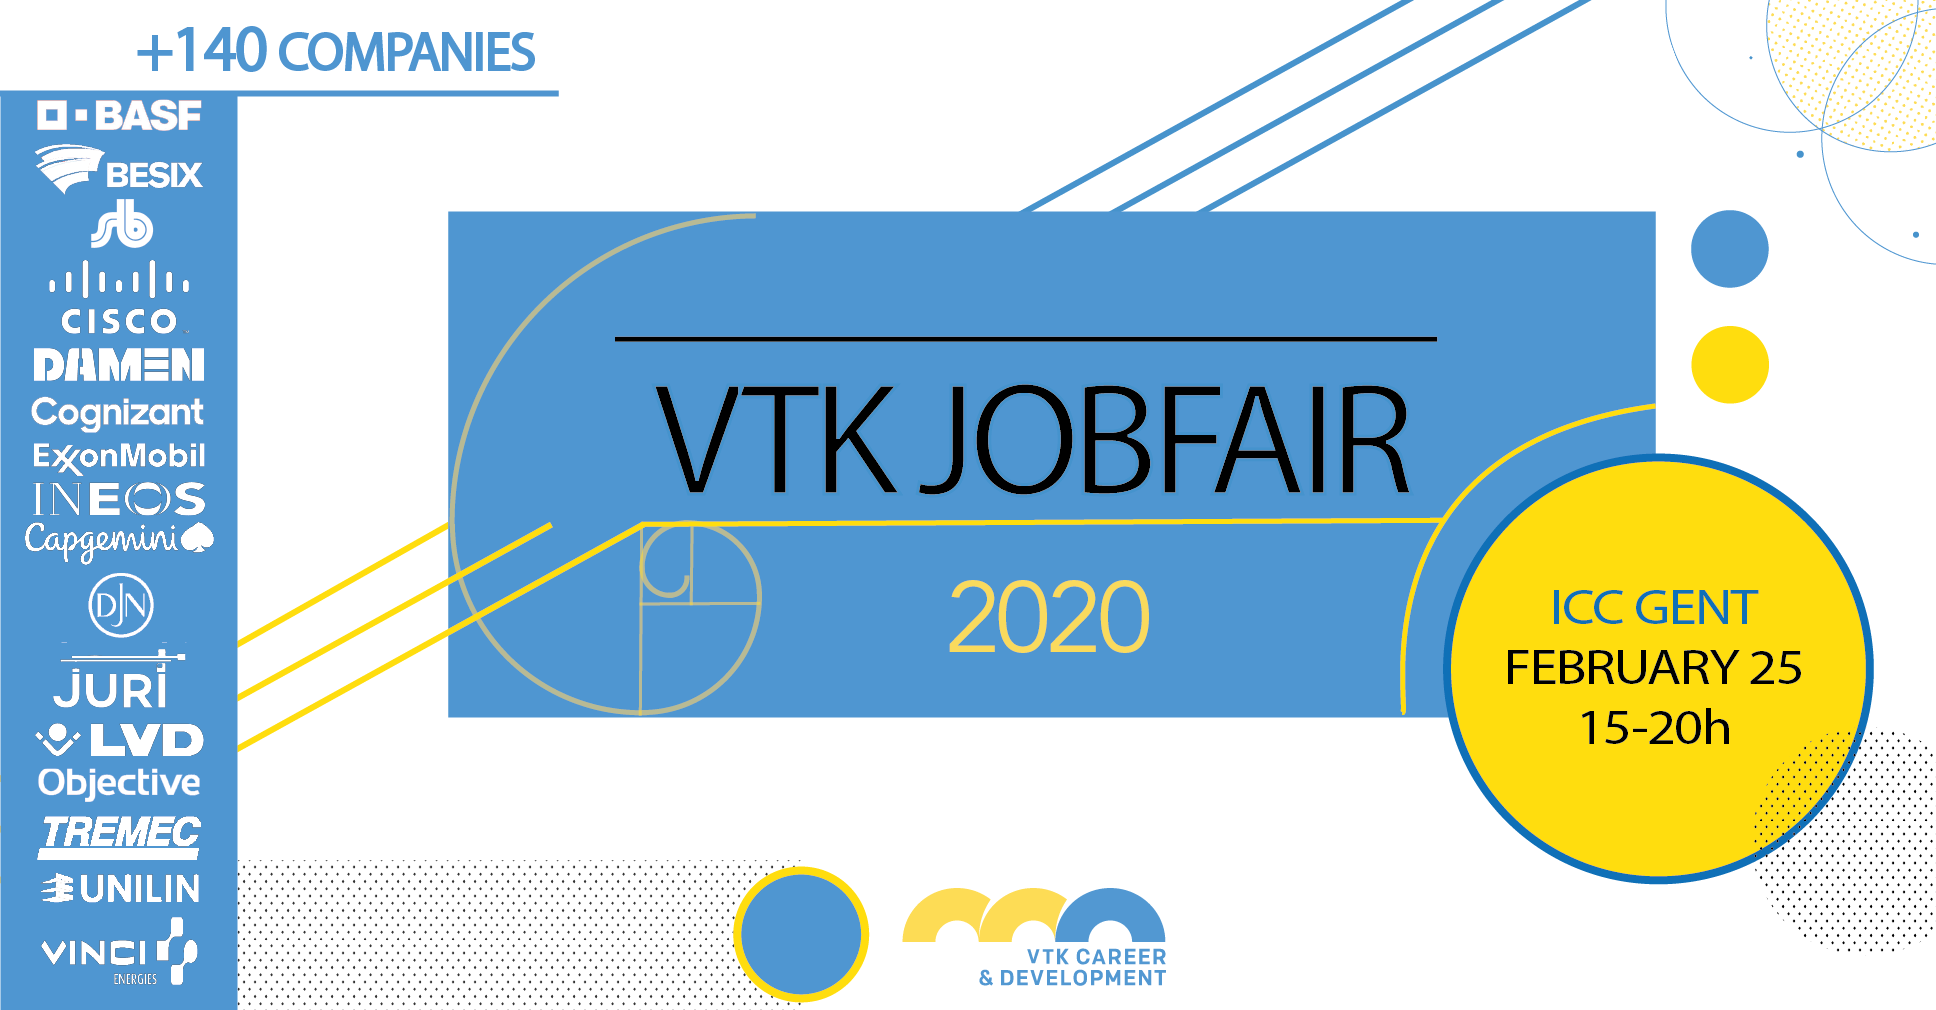 Subscribe for the VTK Jobfair